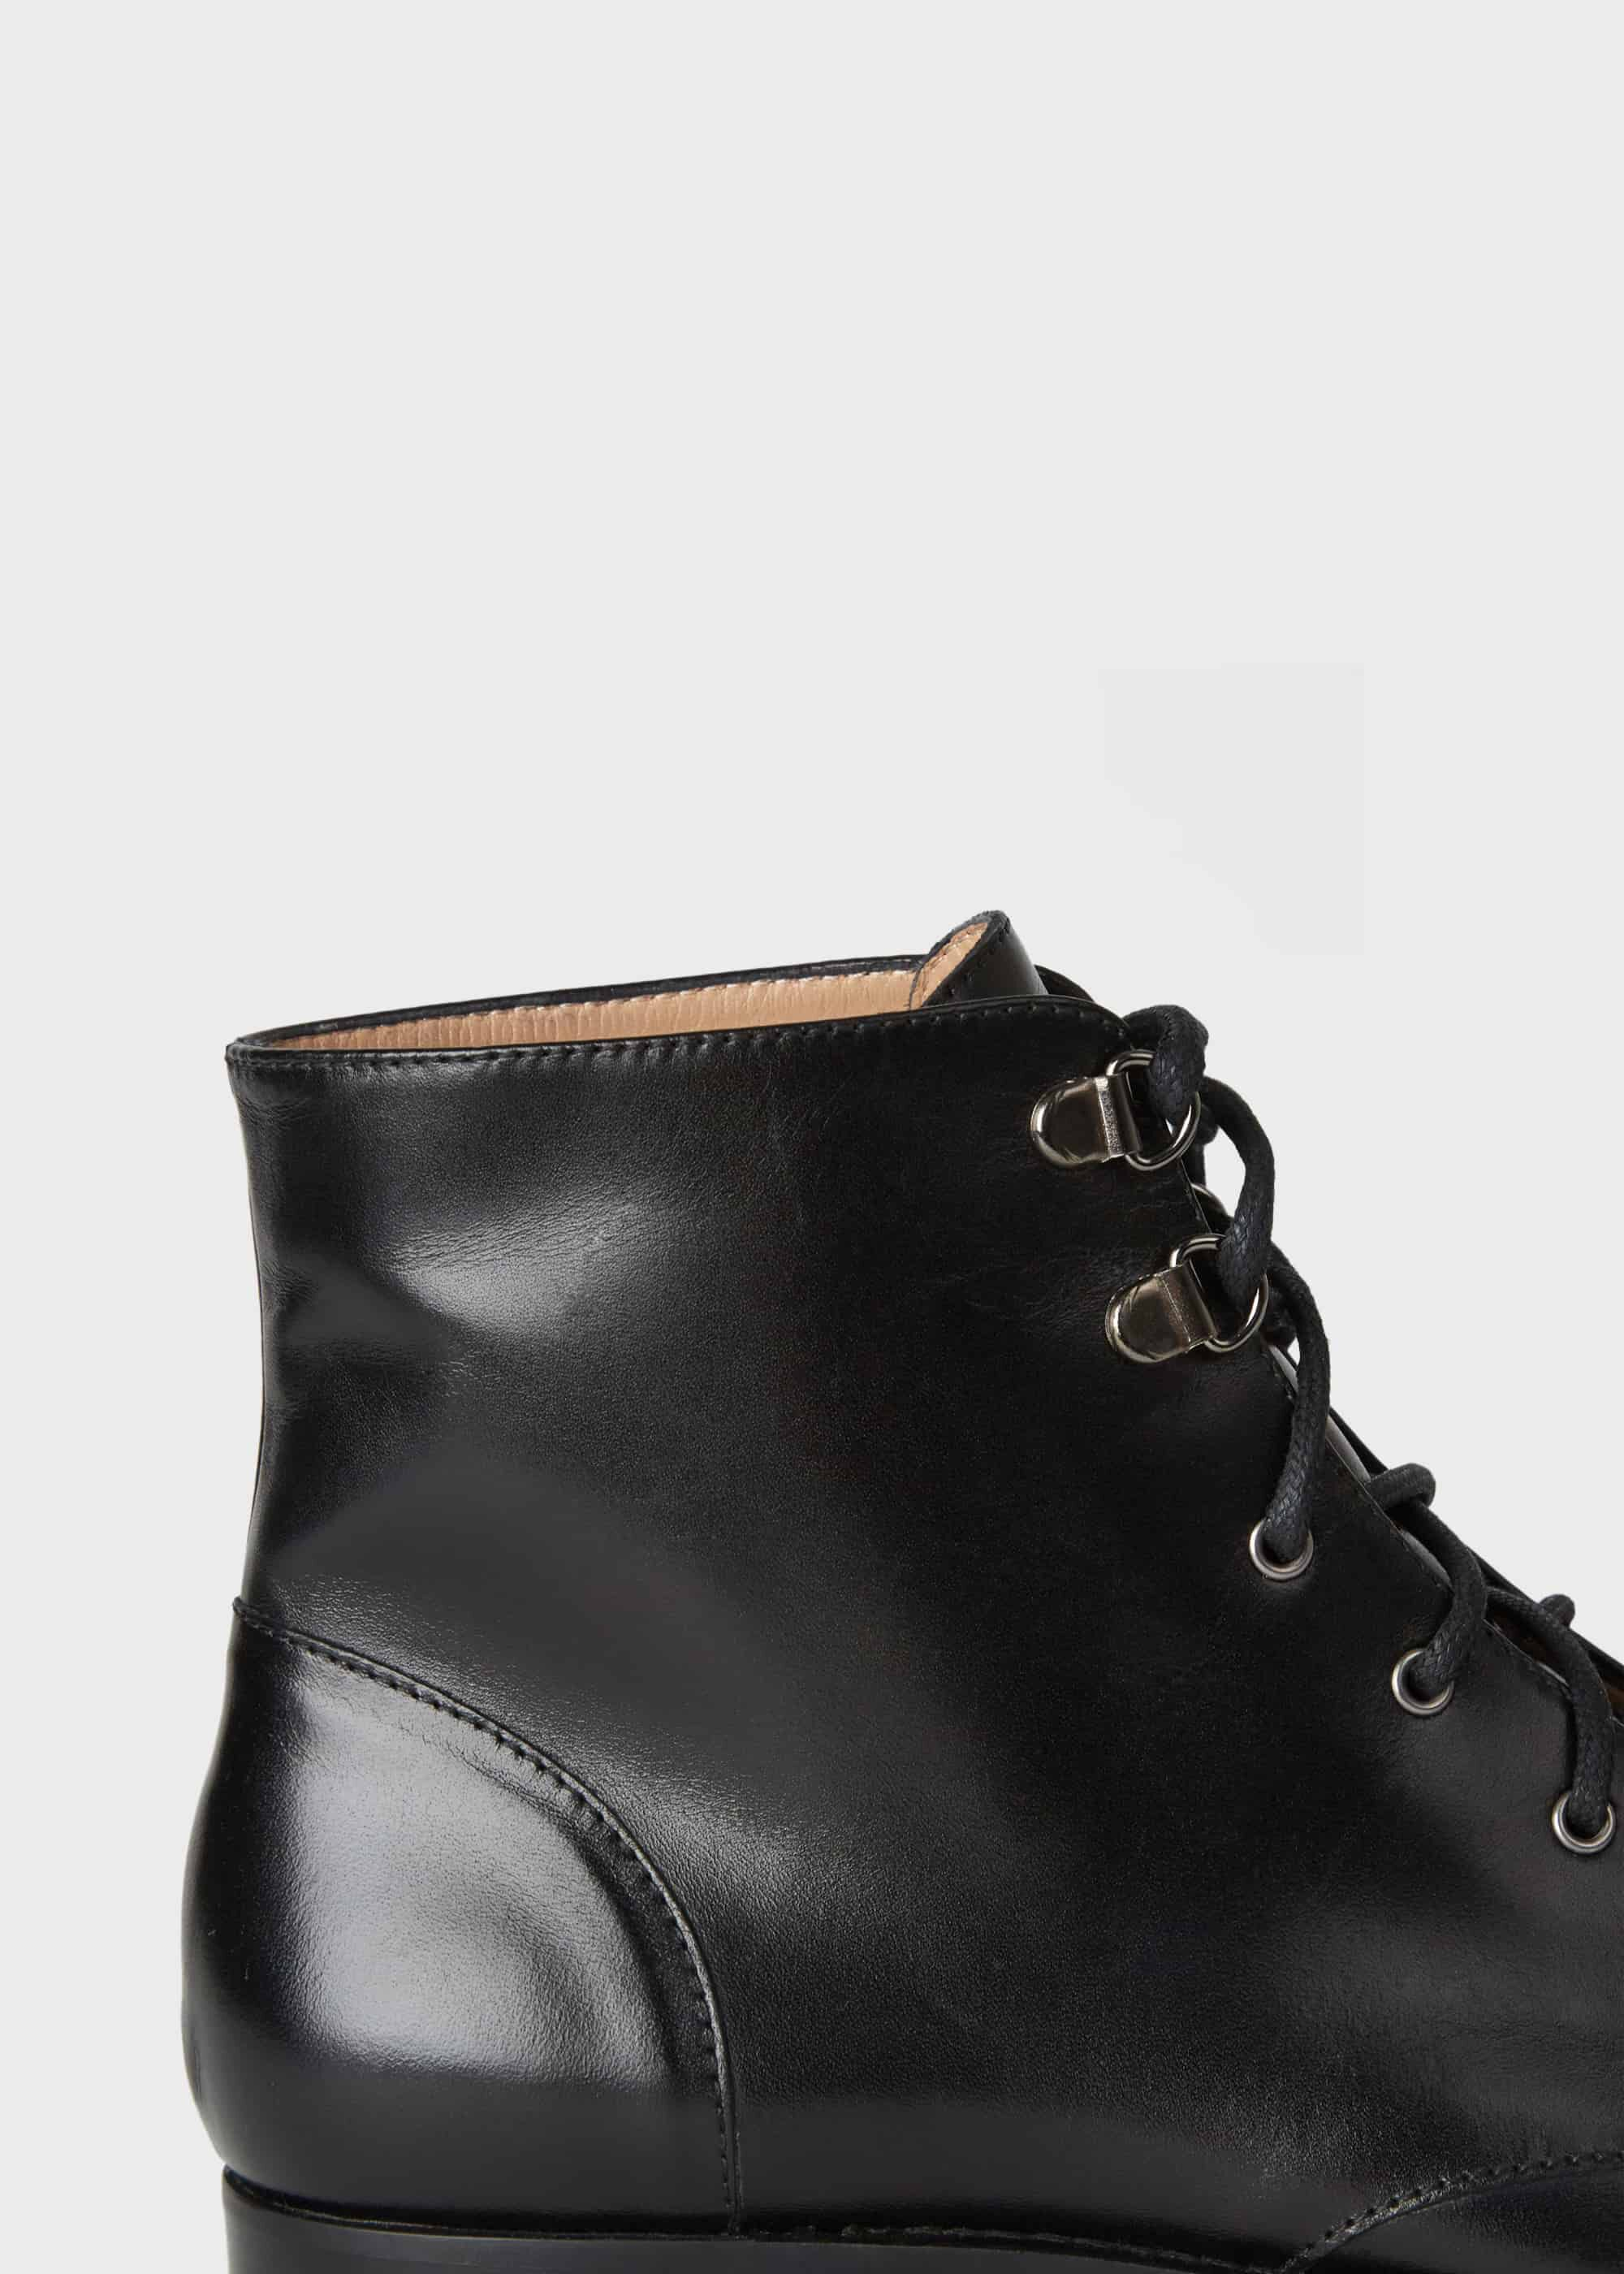 MALTA Smart Lace Up Boot brown | Dune London